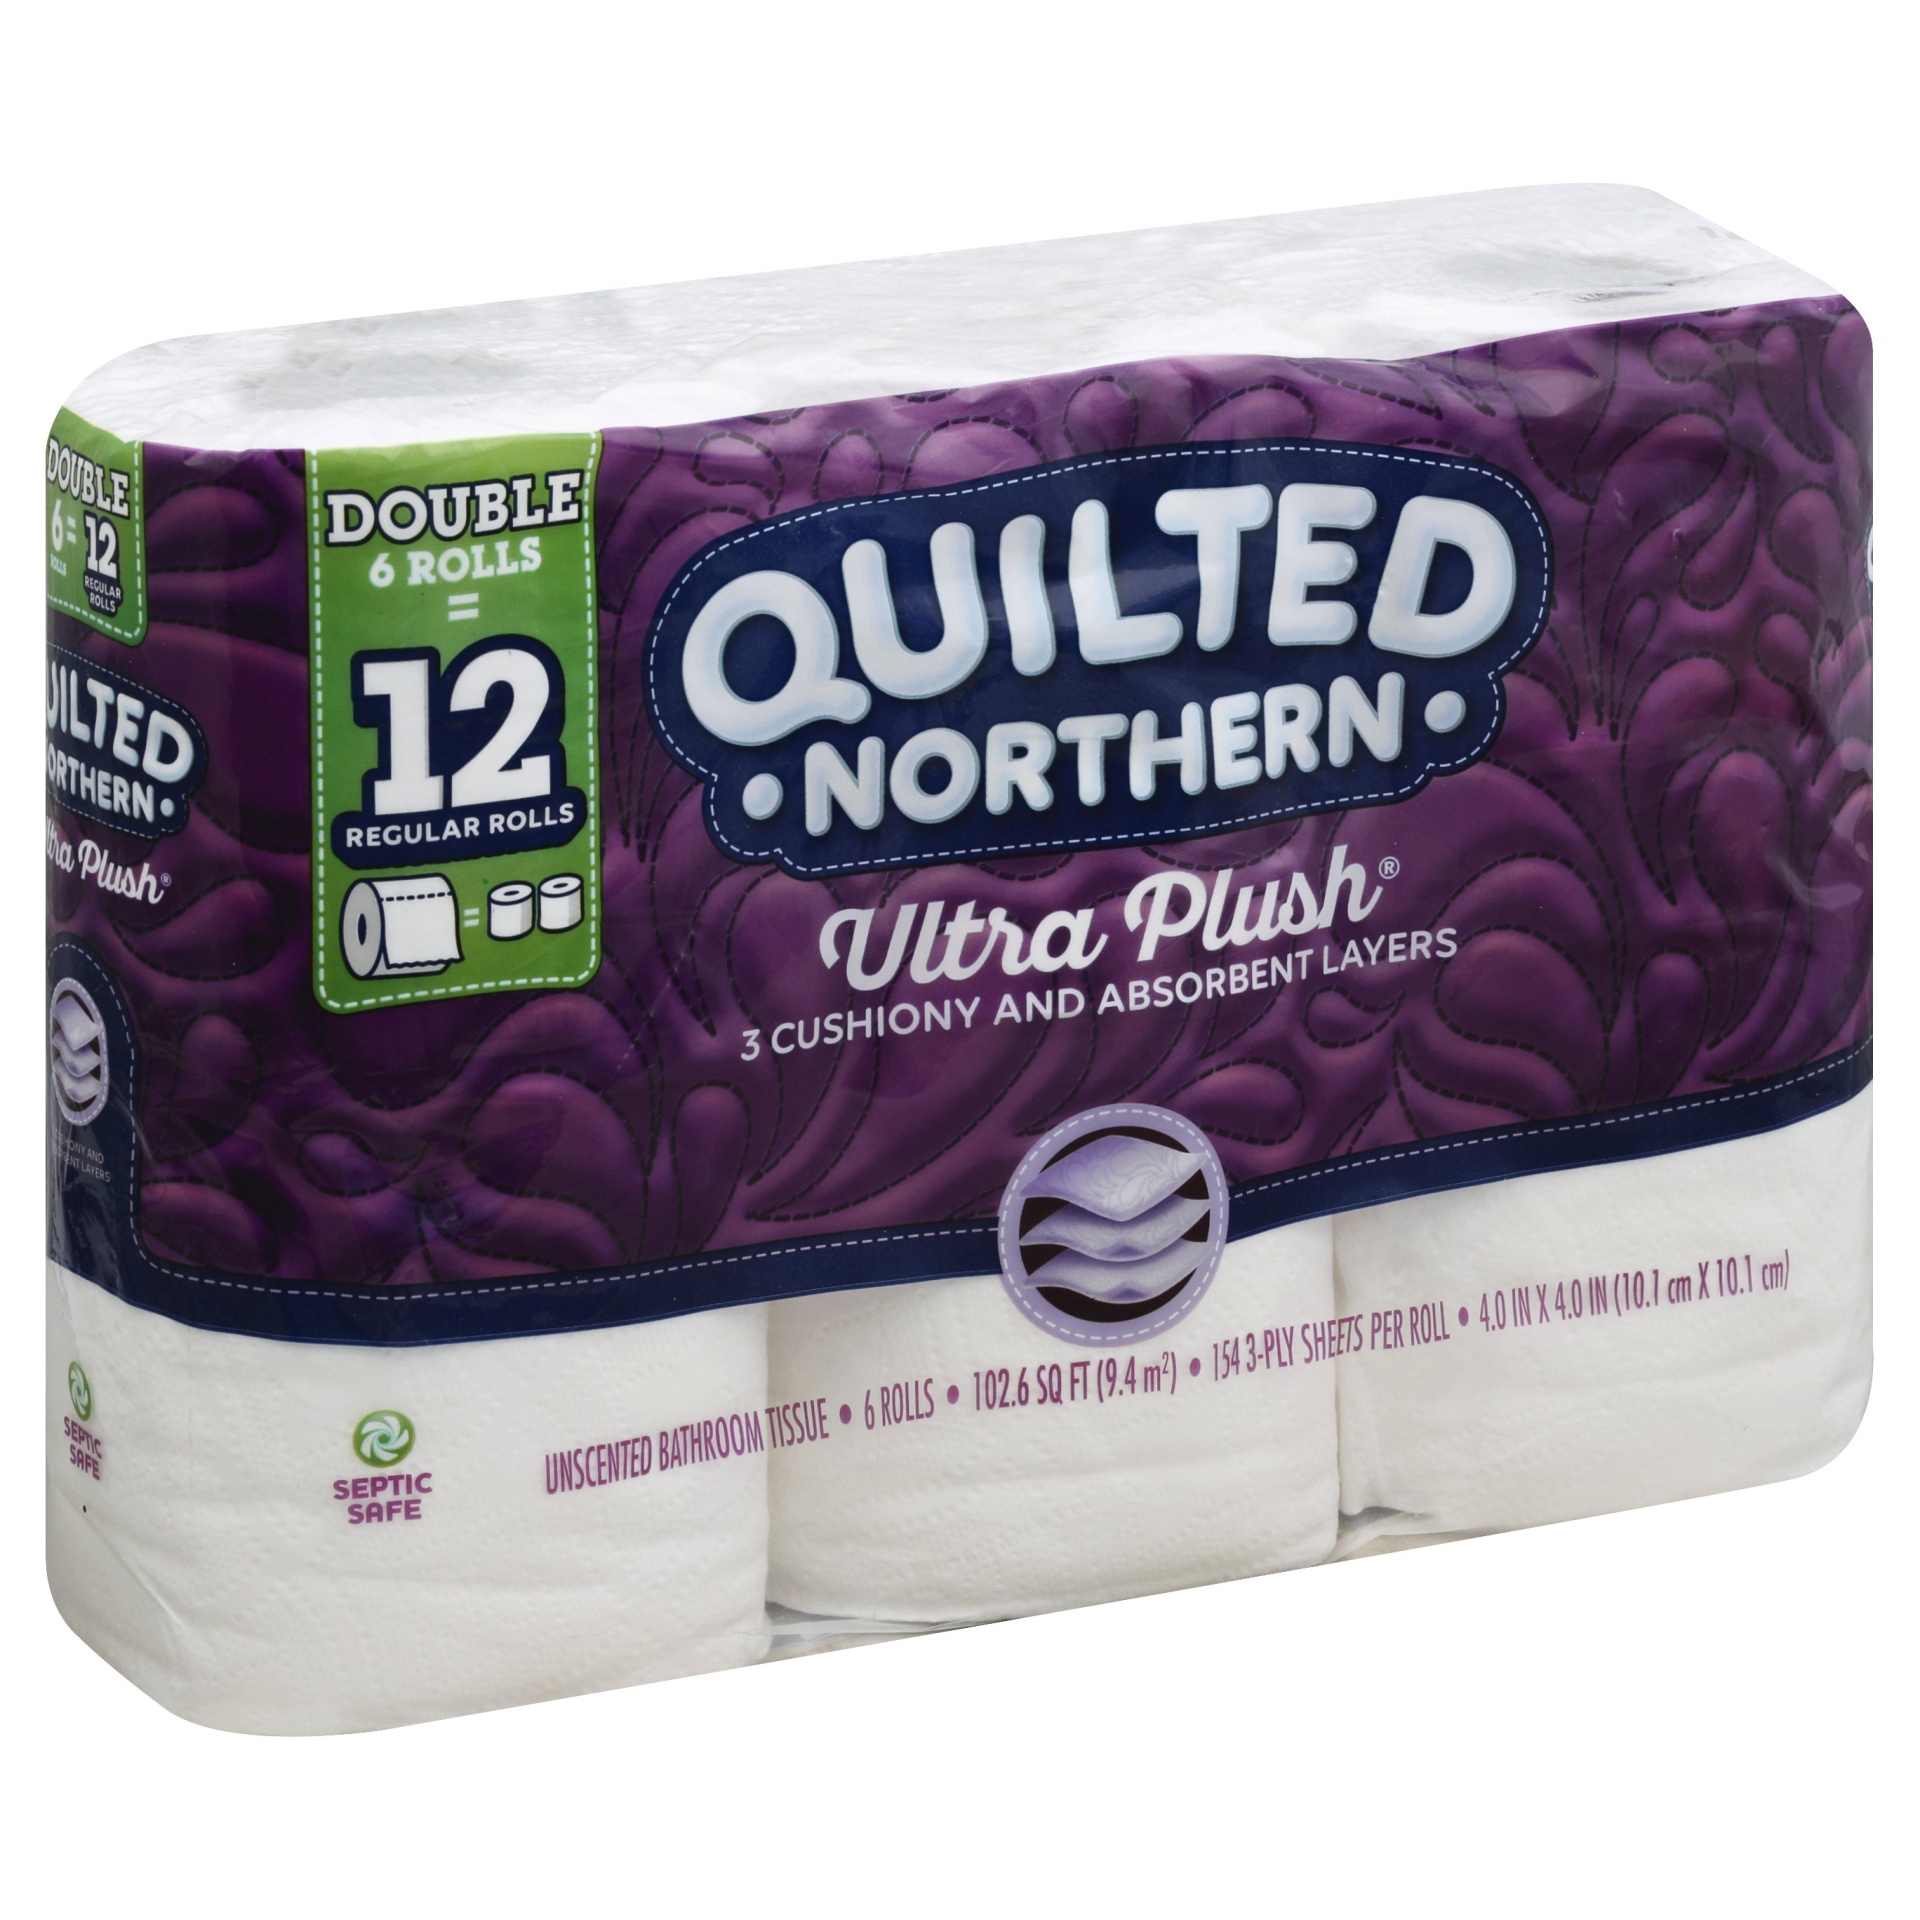 slide 1 of 6, Quilted Northern Ultra Plush Toilet Paper 6 Double Rolls,